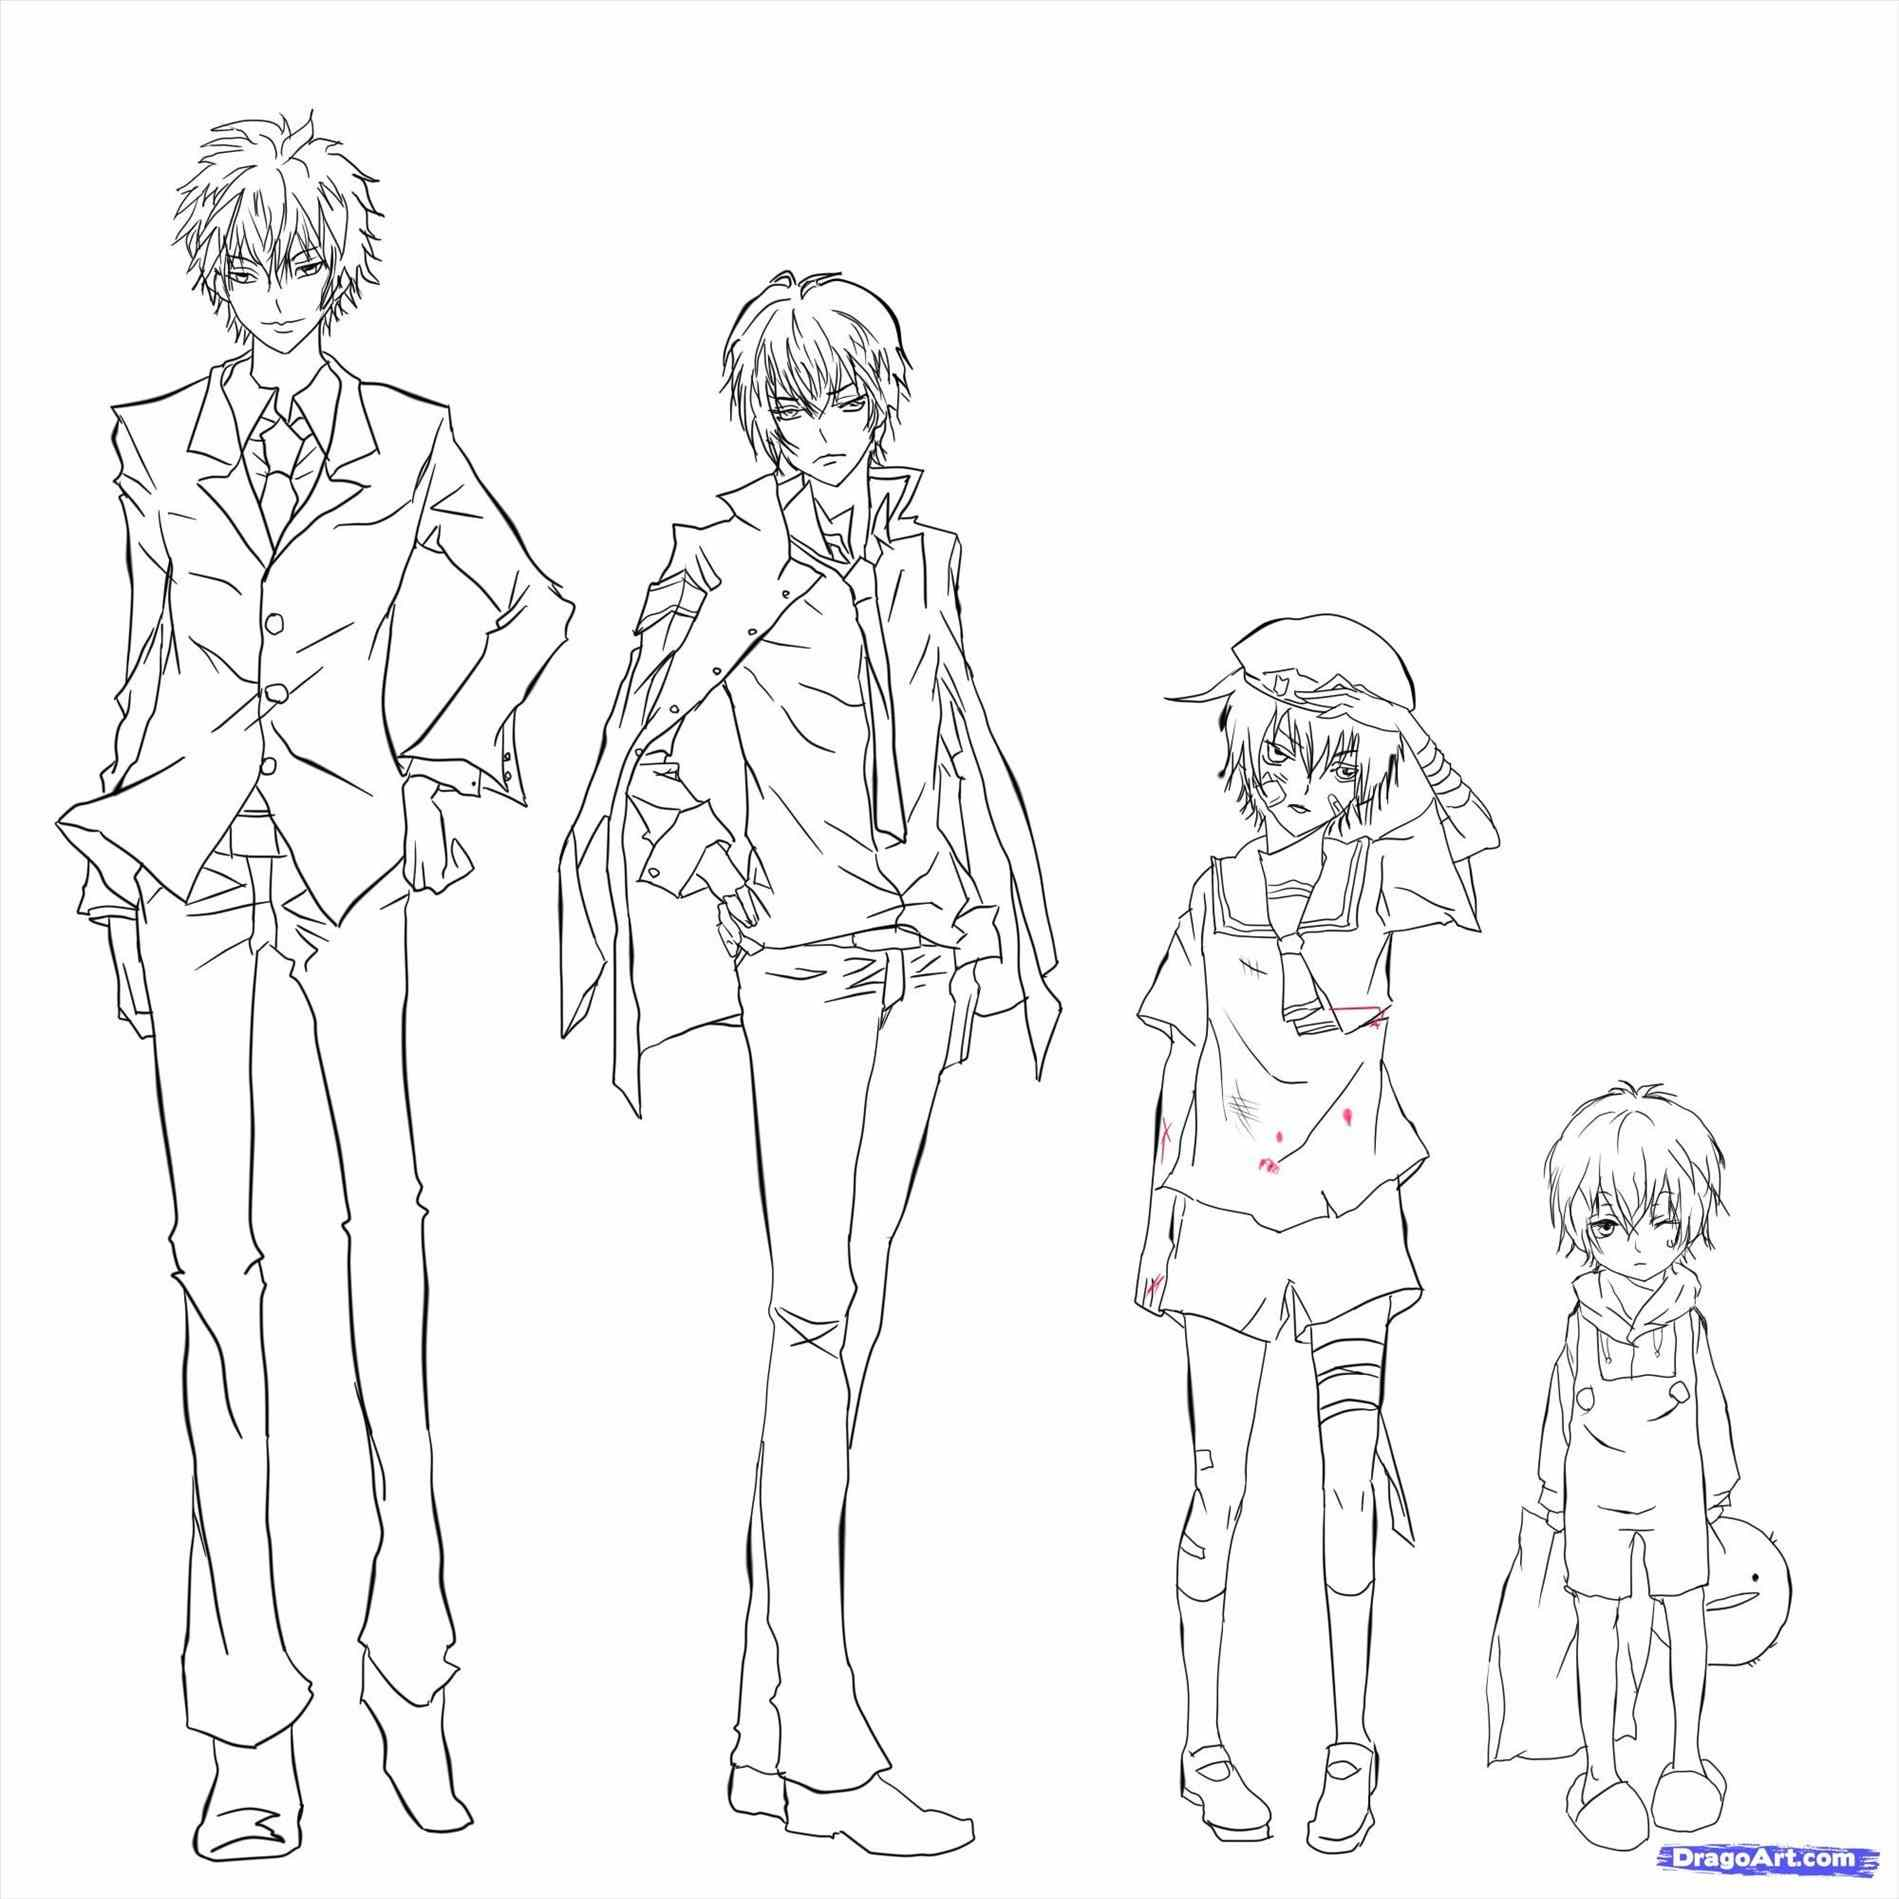 1899x1899 Pencil Anime Character Body Sketches Drawn S Outline Draw Girl How